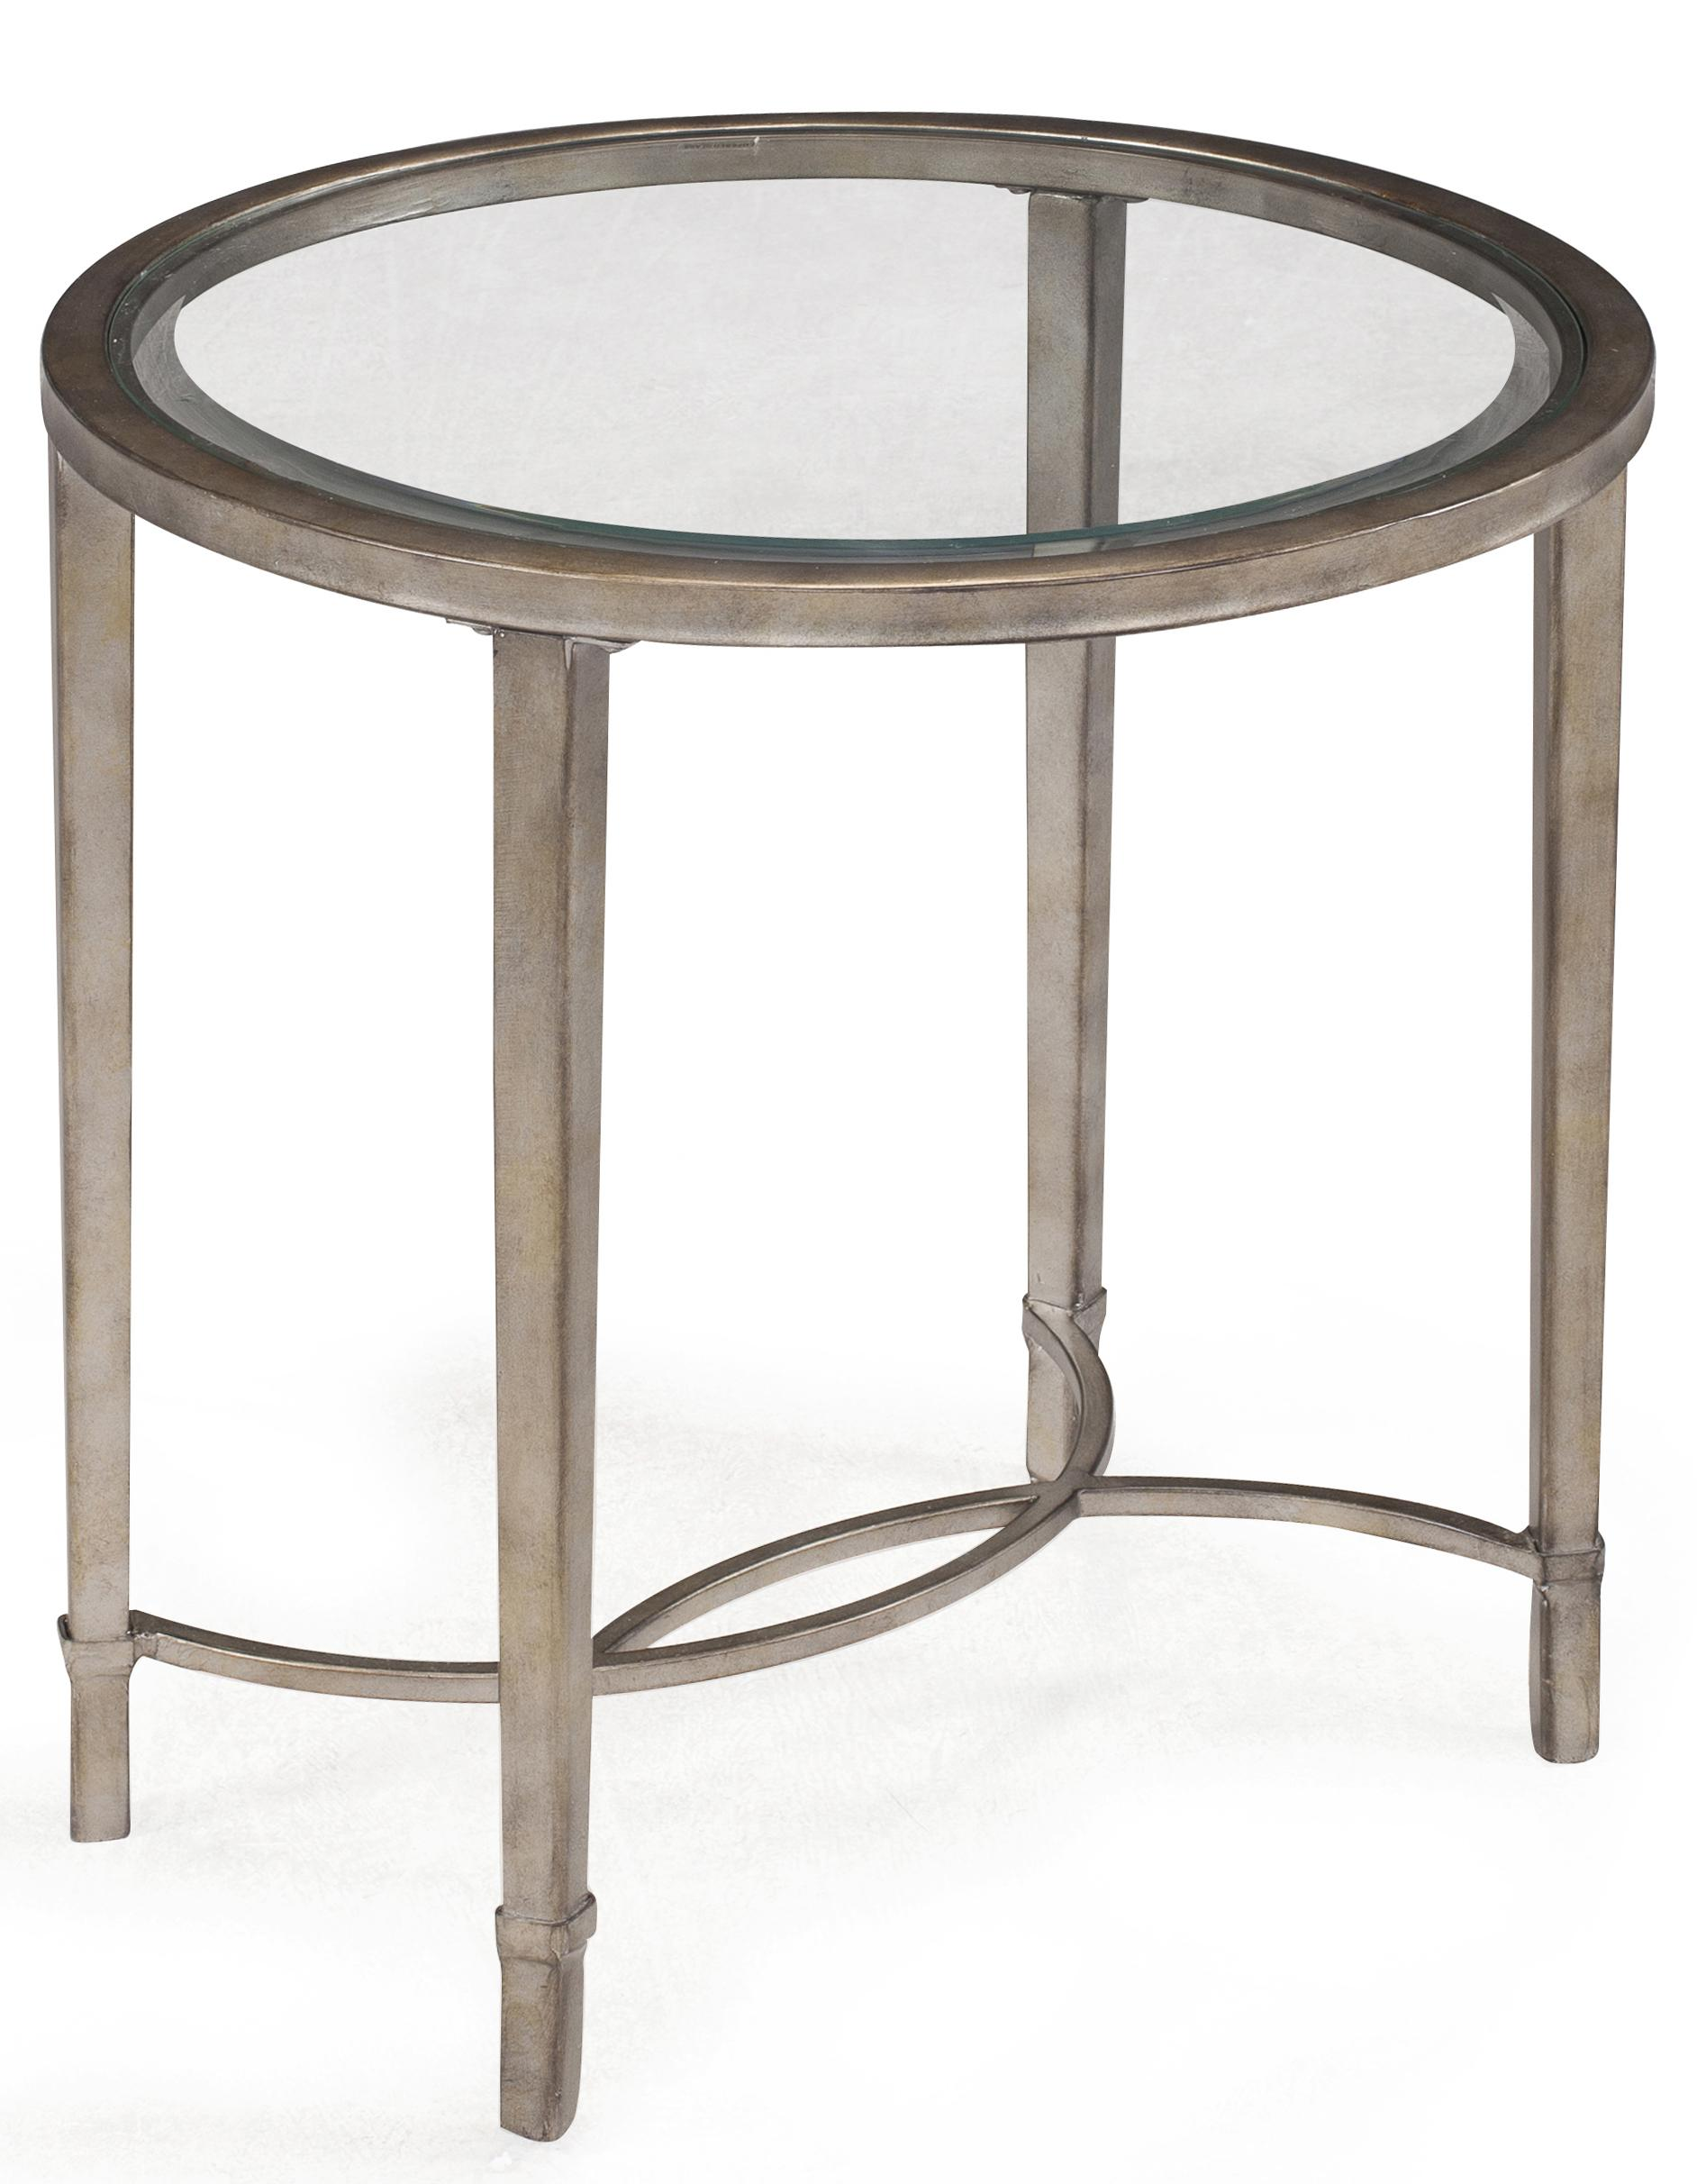 Magnussen Home Copia Oval End Table - Item Number: T2114-07